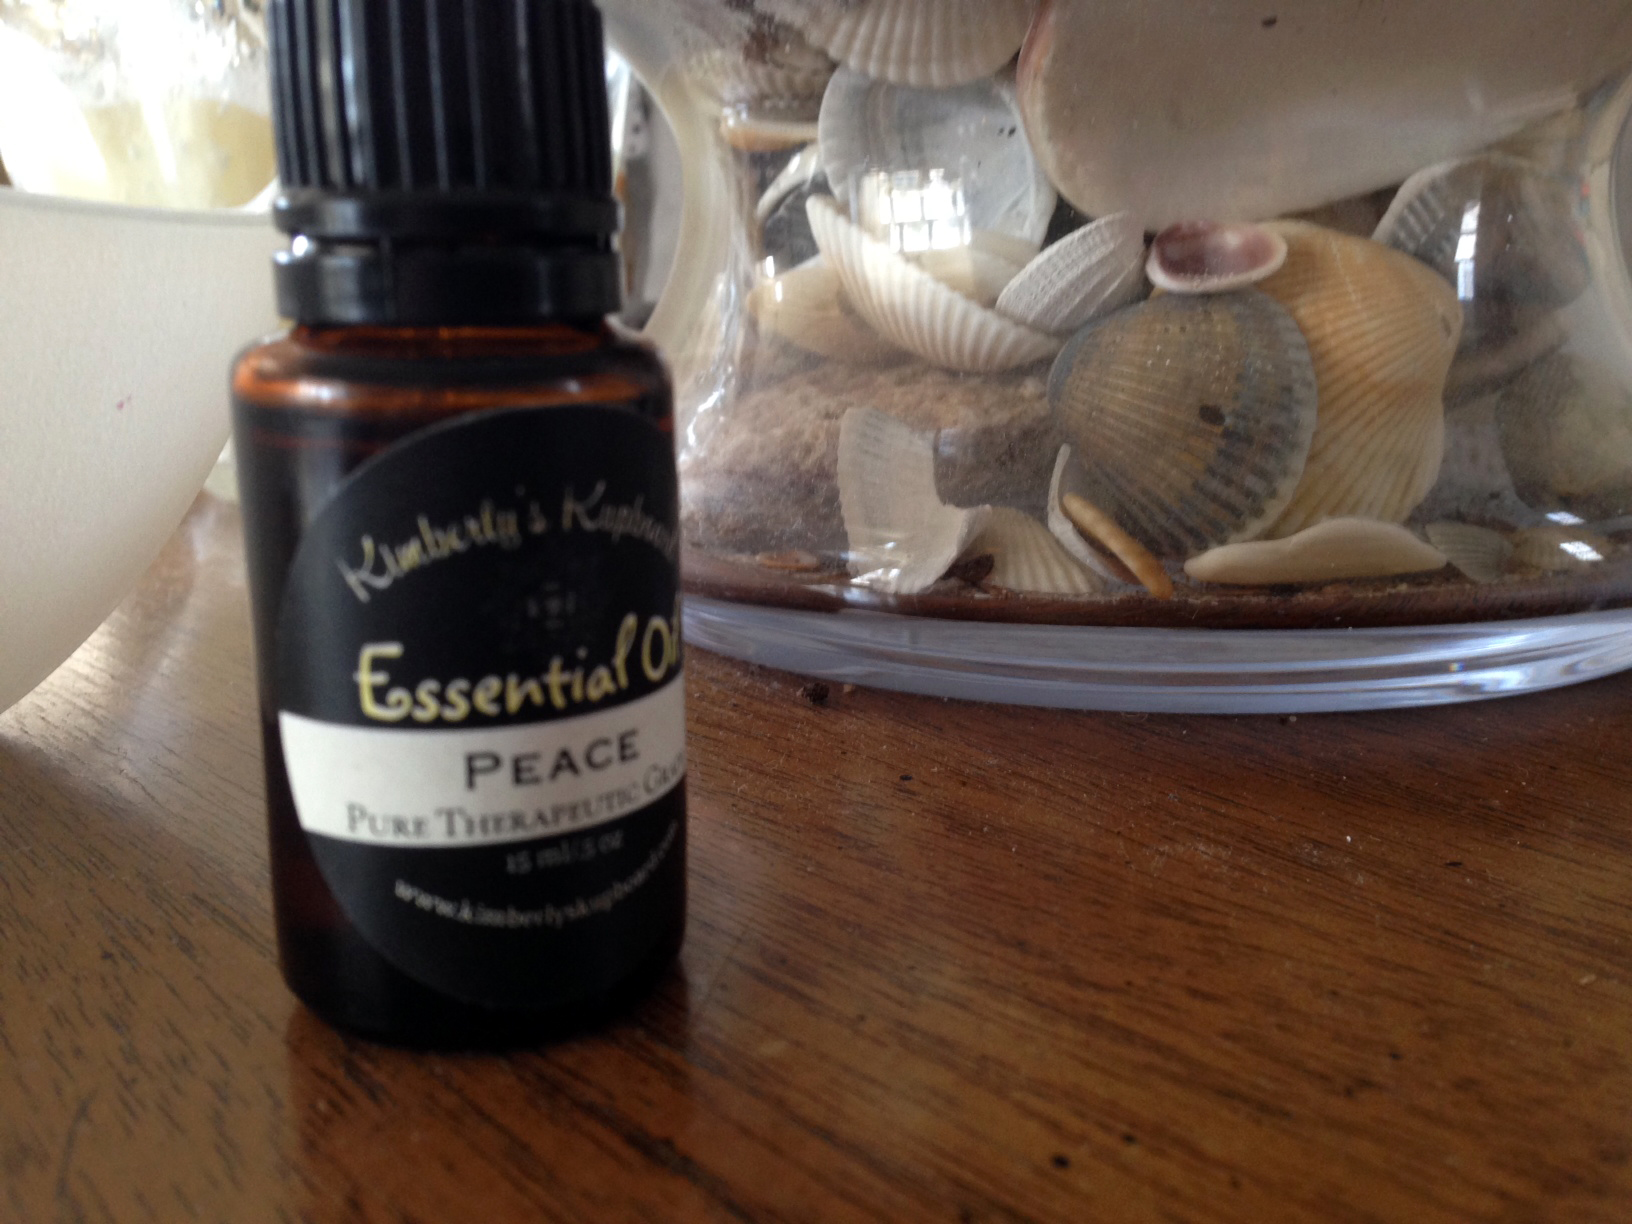 Shells and and Essential Oil called Peace.